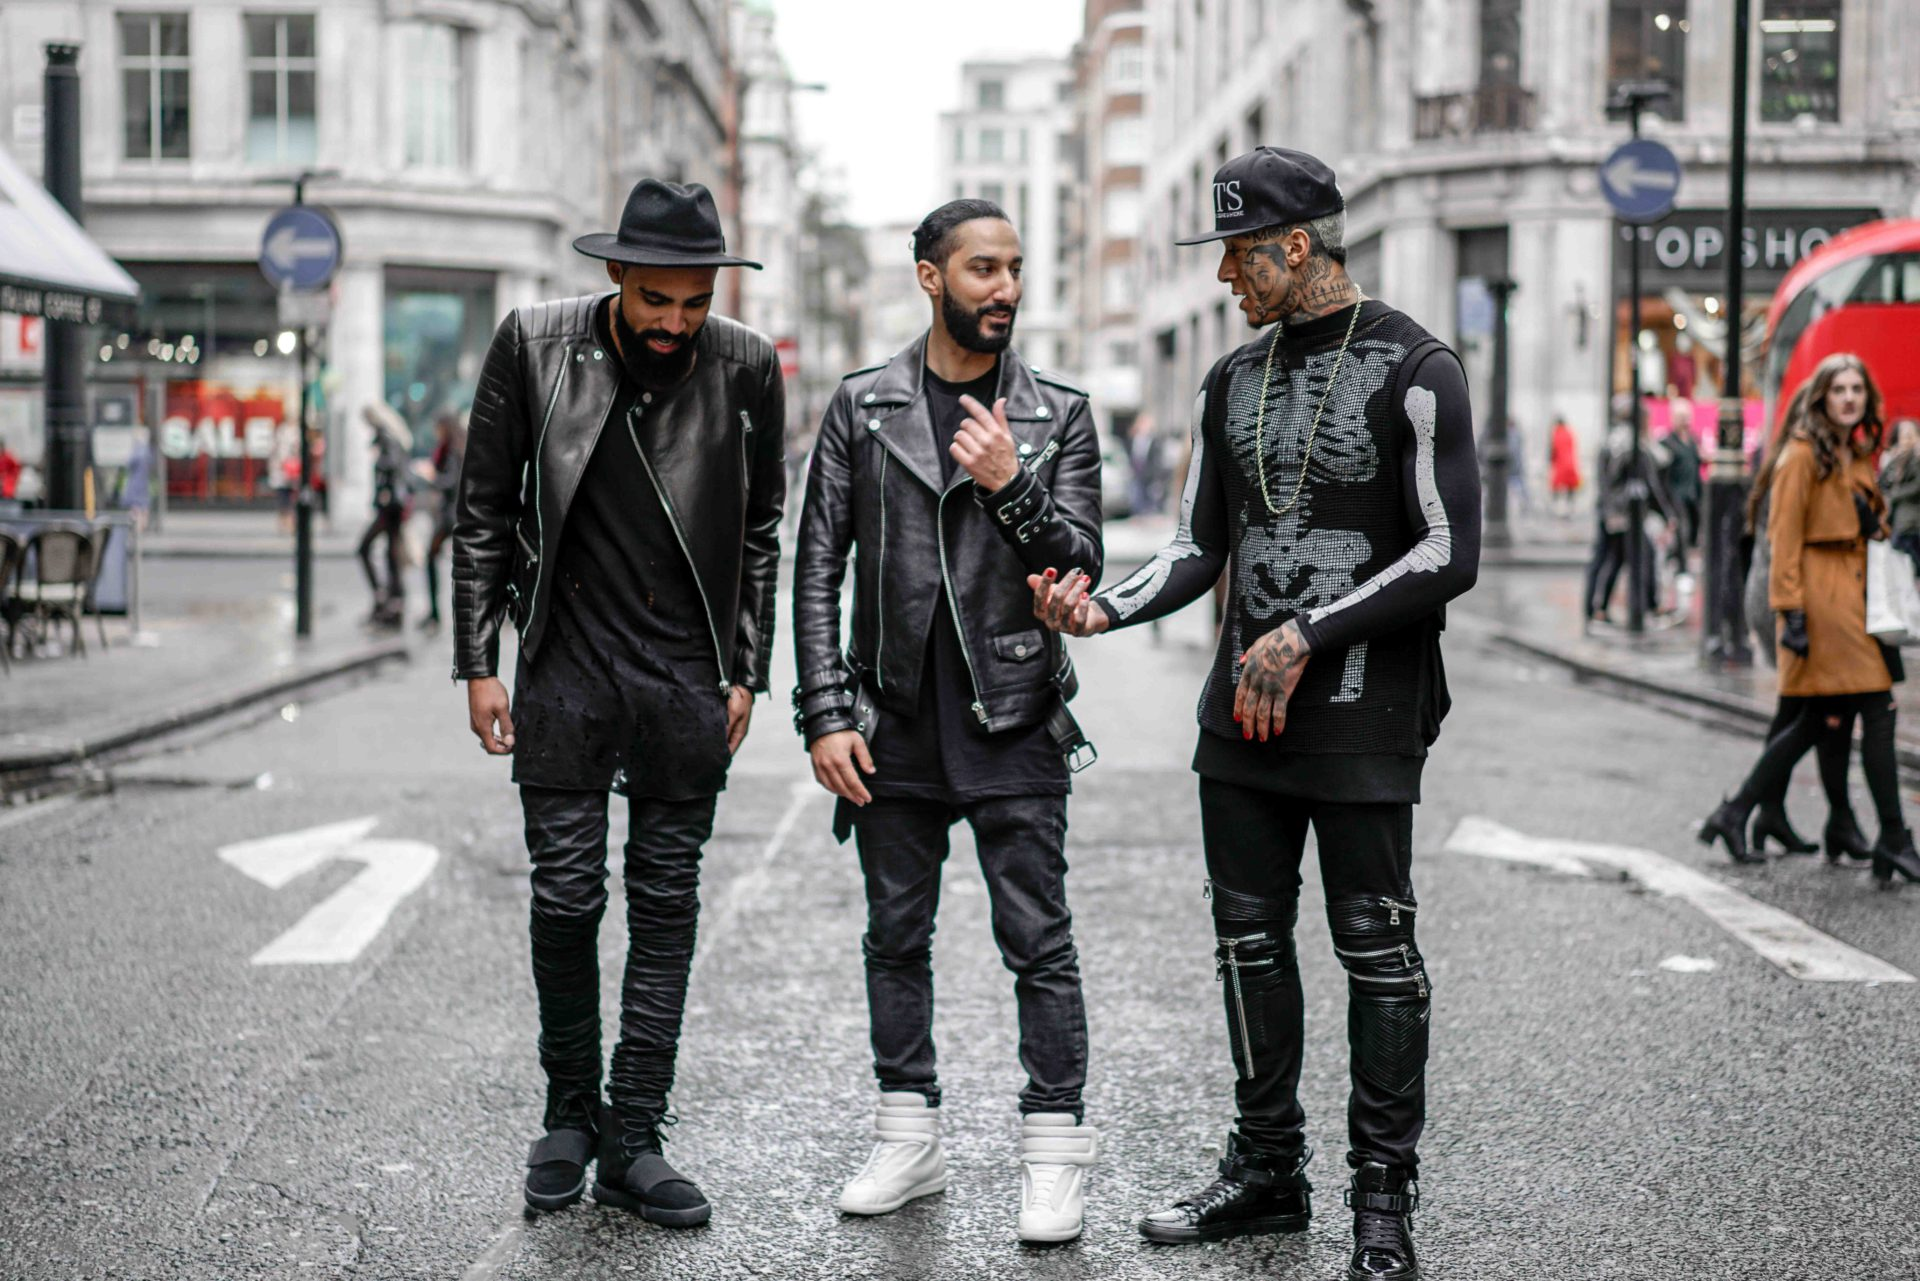 Street Style London during London Fashion Week with Fahsion Editor Jean-Claude Mpassy, Rapper Tino Kamal and Designer Mounir Ghazi